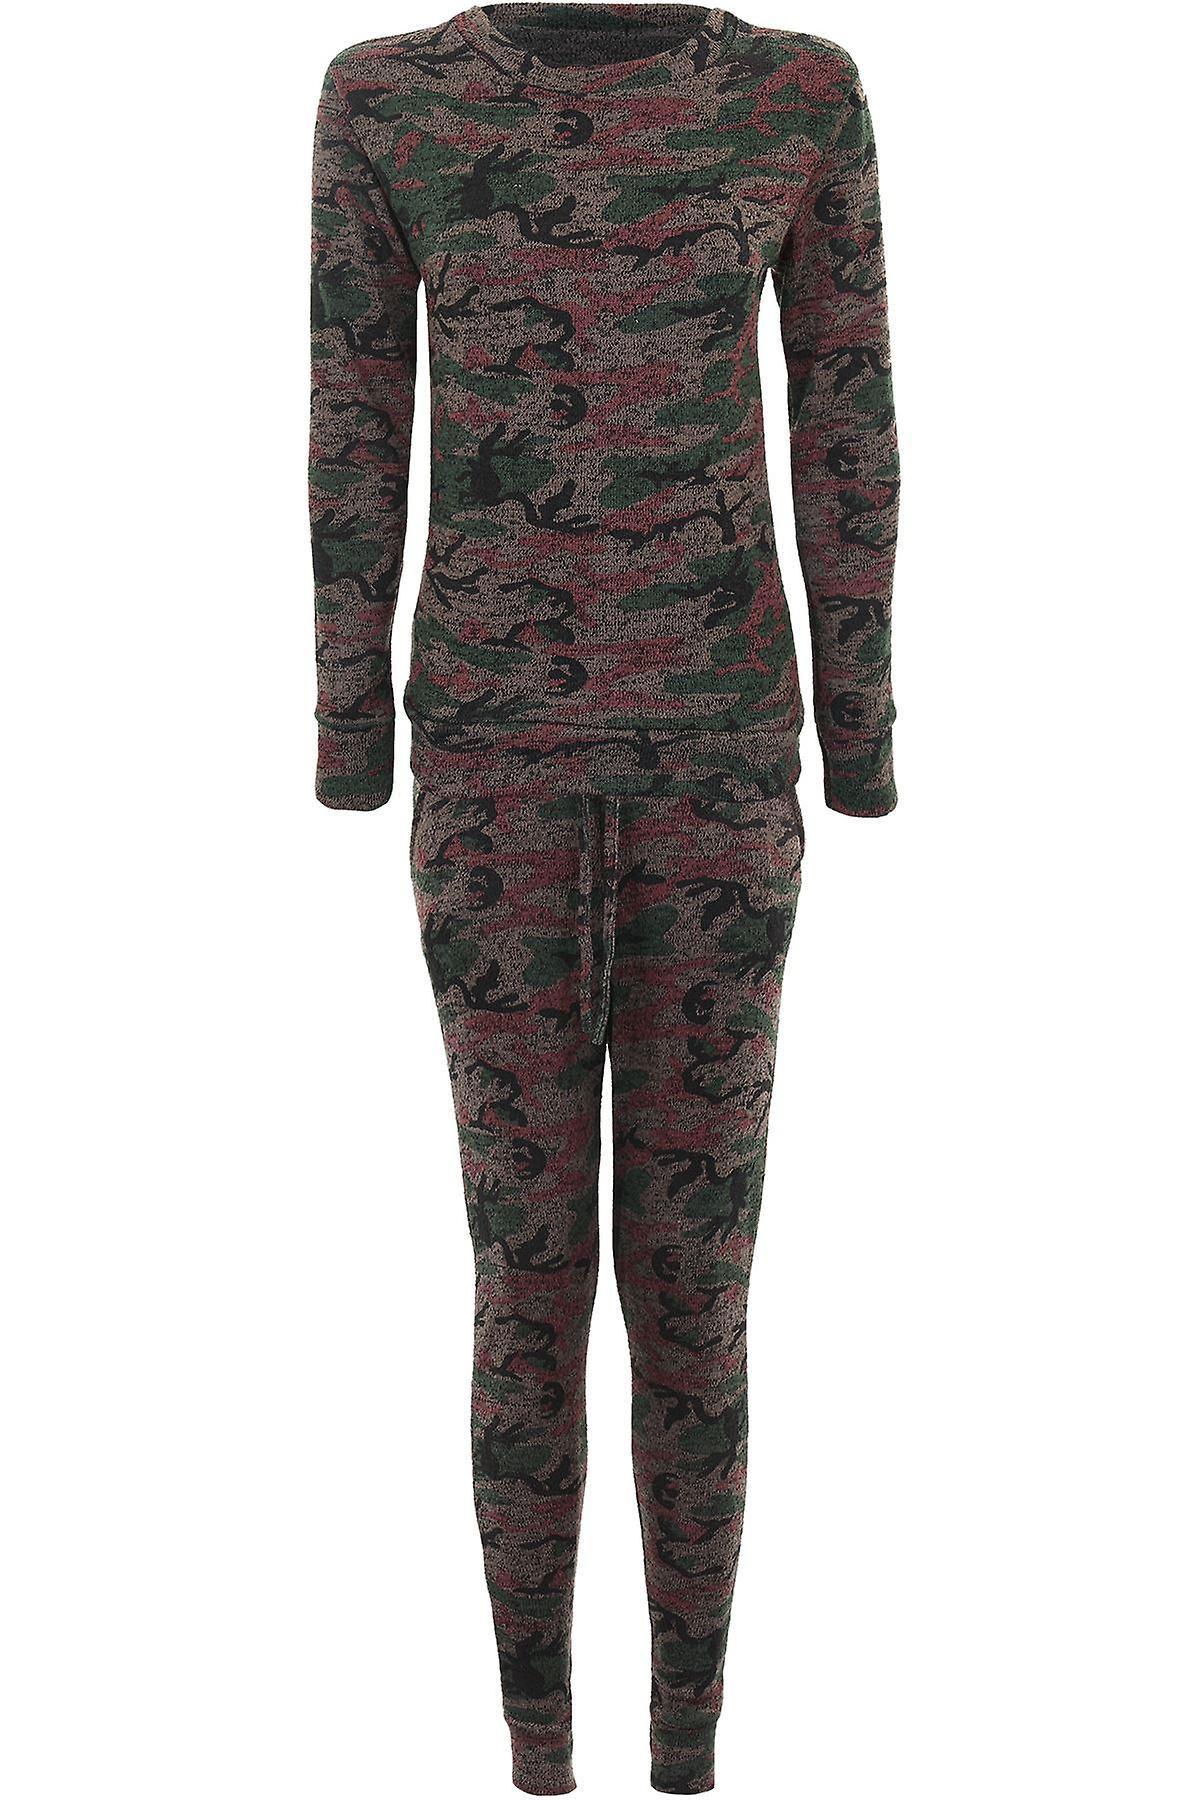 d50c21af8eeb5 Ladies Army Camouflage Printed Tracksuit 2 Piece Lounge Stretch Jogging Suit